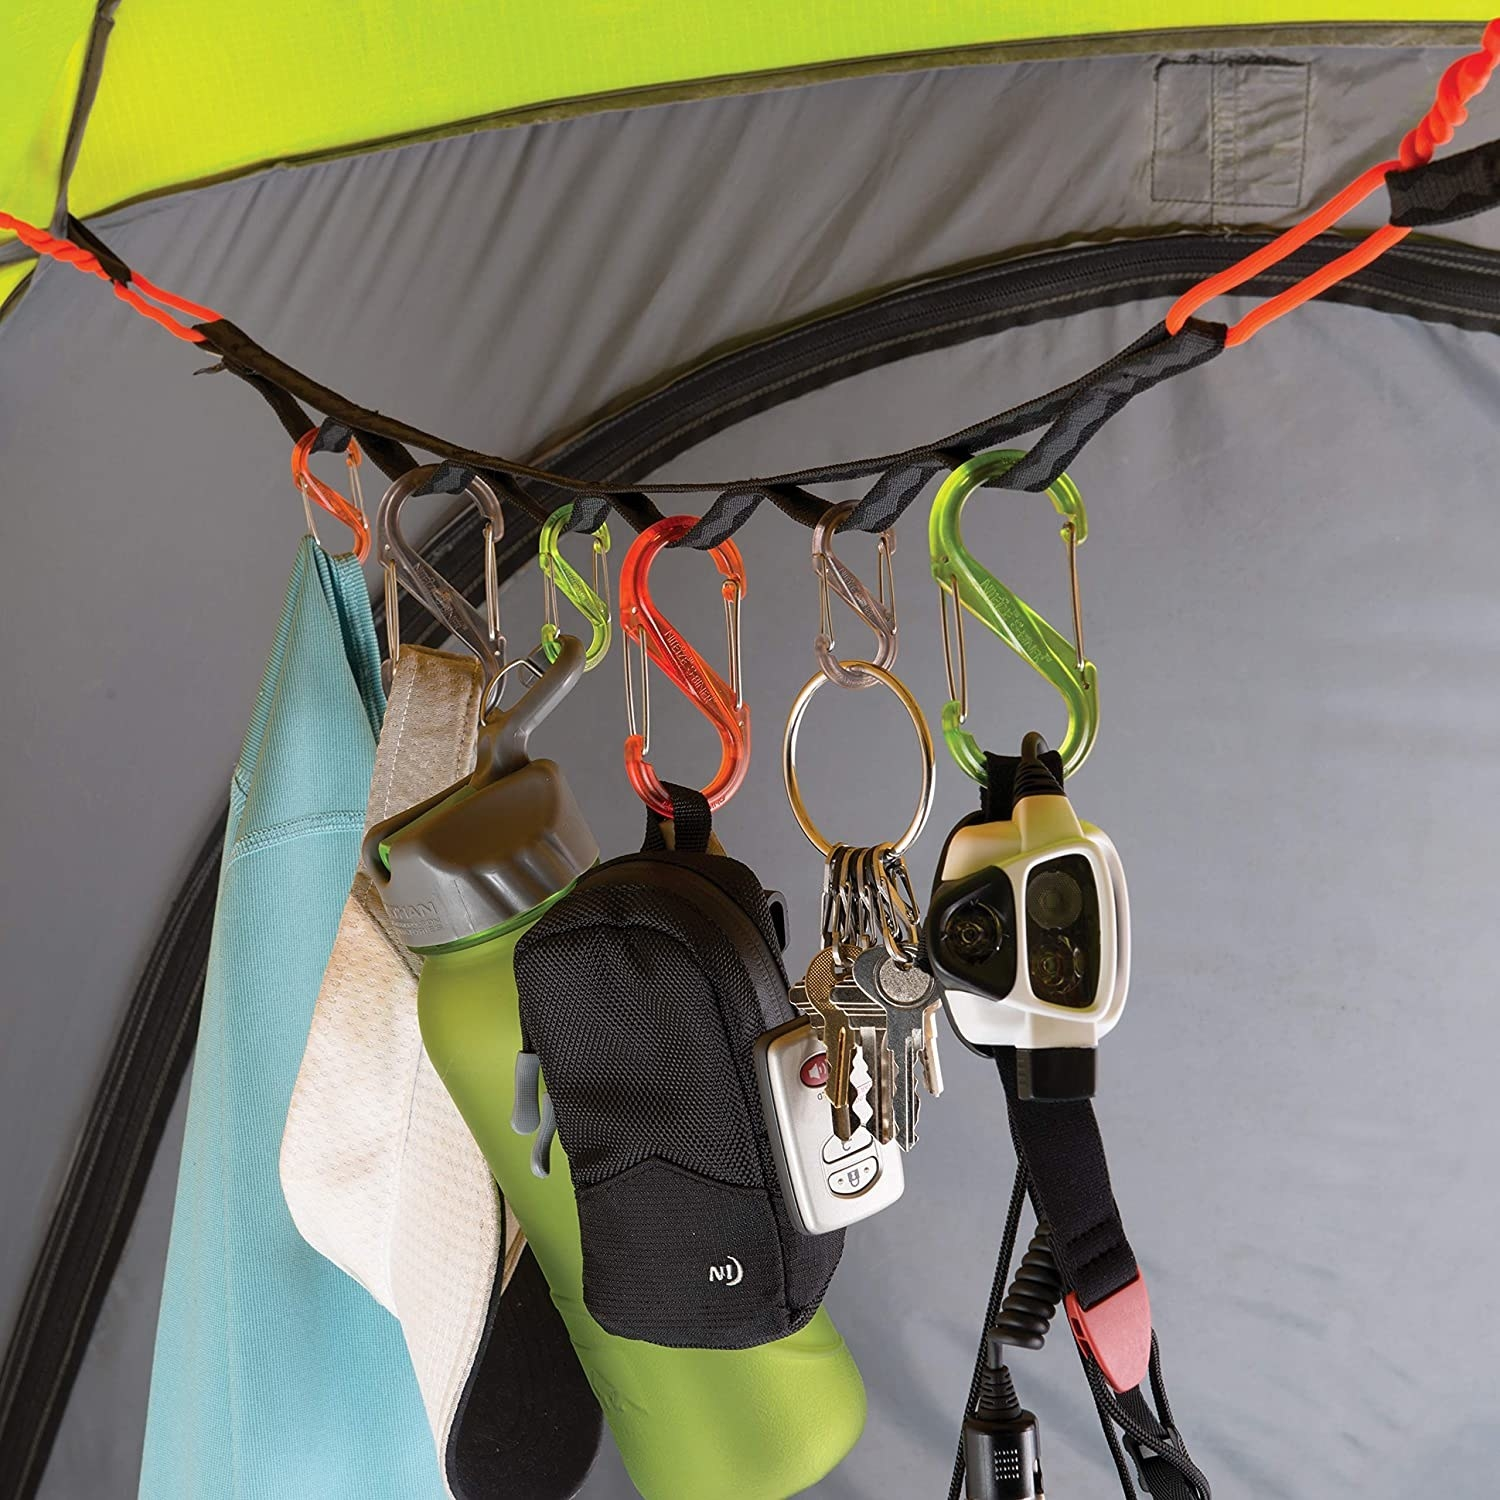 strap with fabric rings attached to tent ceiling with twist ties hanging S-Biners and carabiners  hlding gear like water bottles, hats, and keys